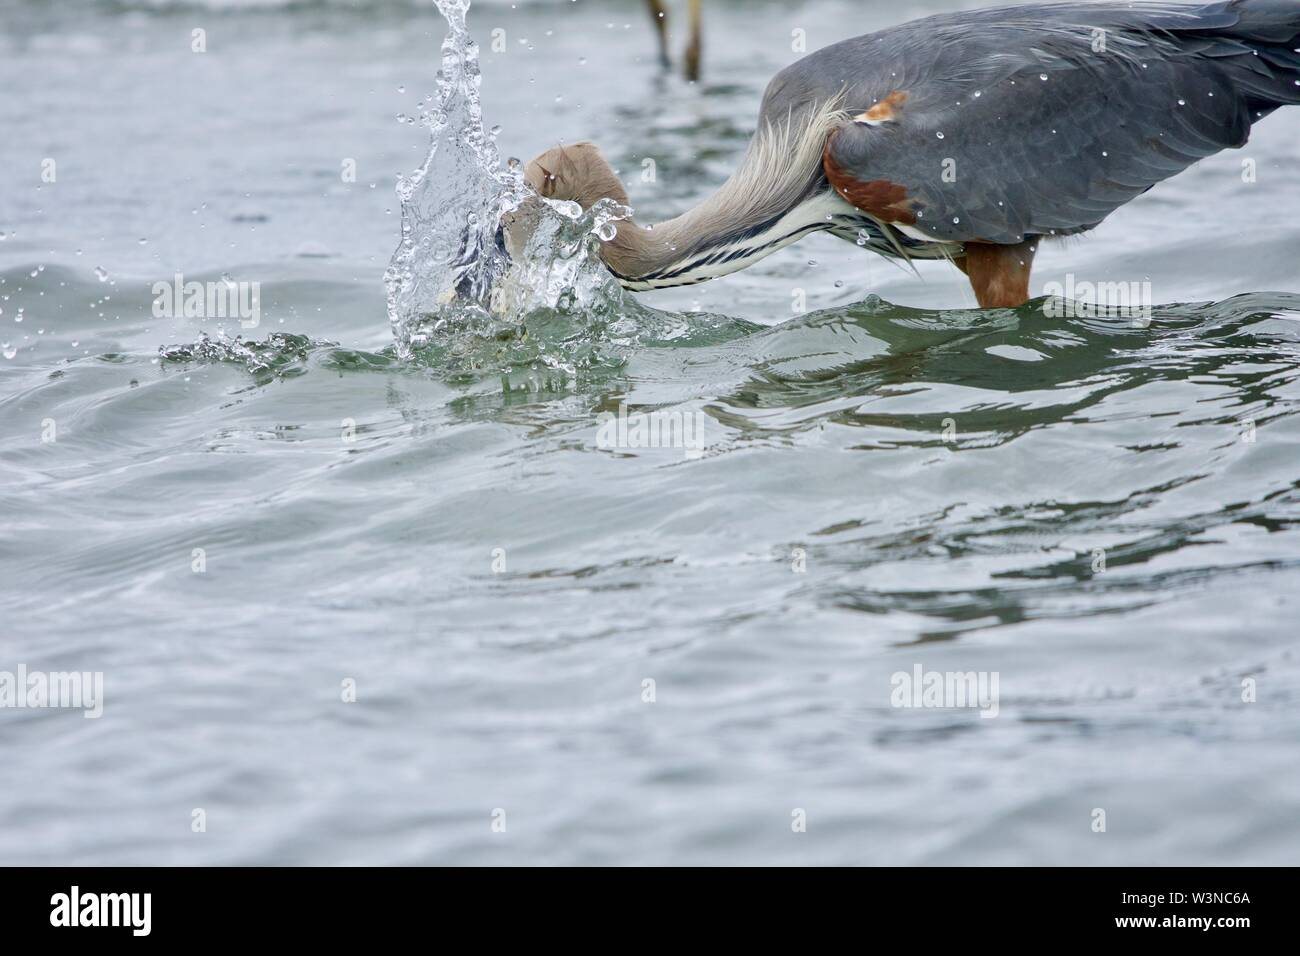 Big splash as great blue heron strikes at a fish in the sea, Witty's Lagoon, Vancouver Island, British Columbia. - Stock Image